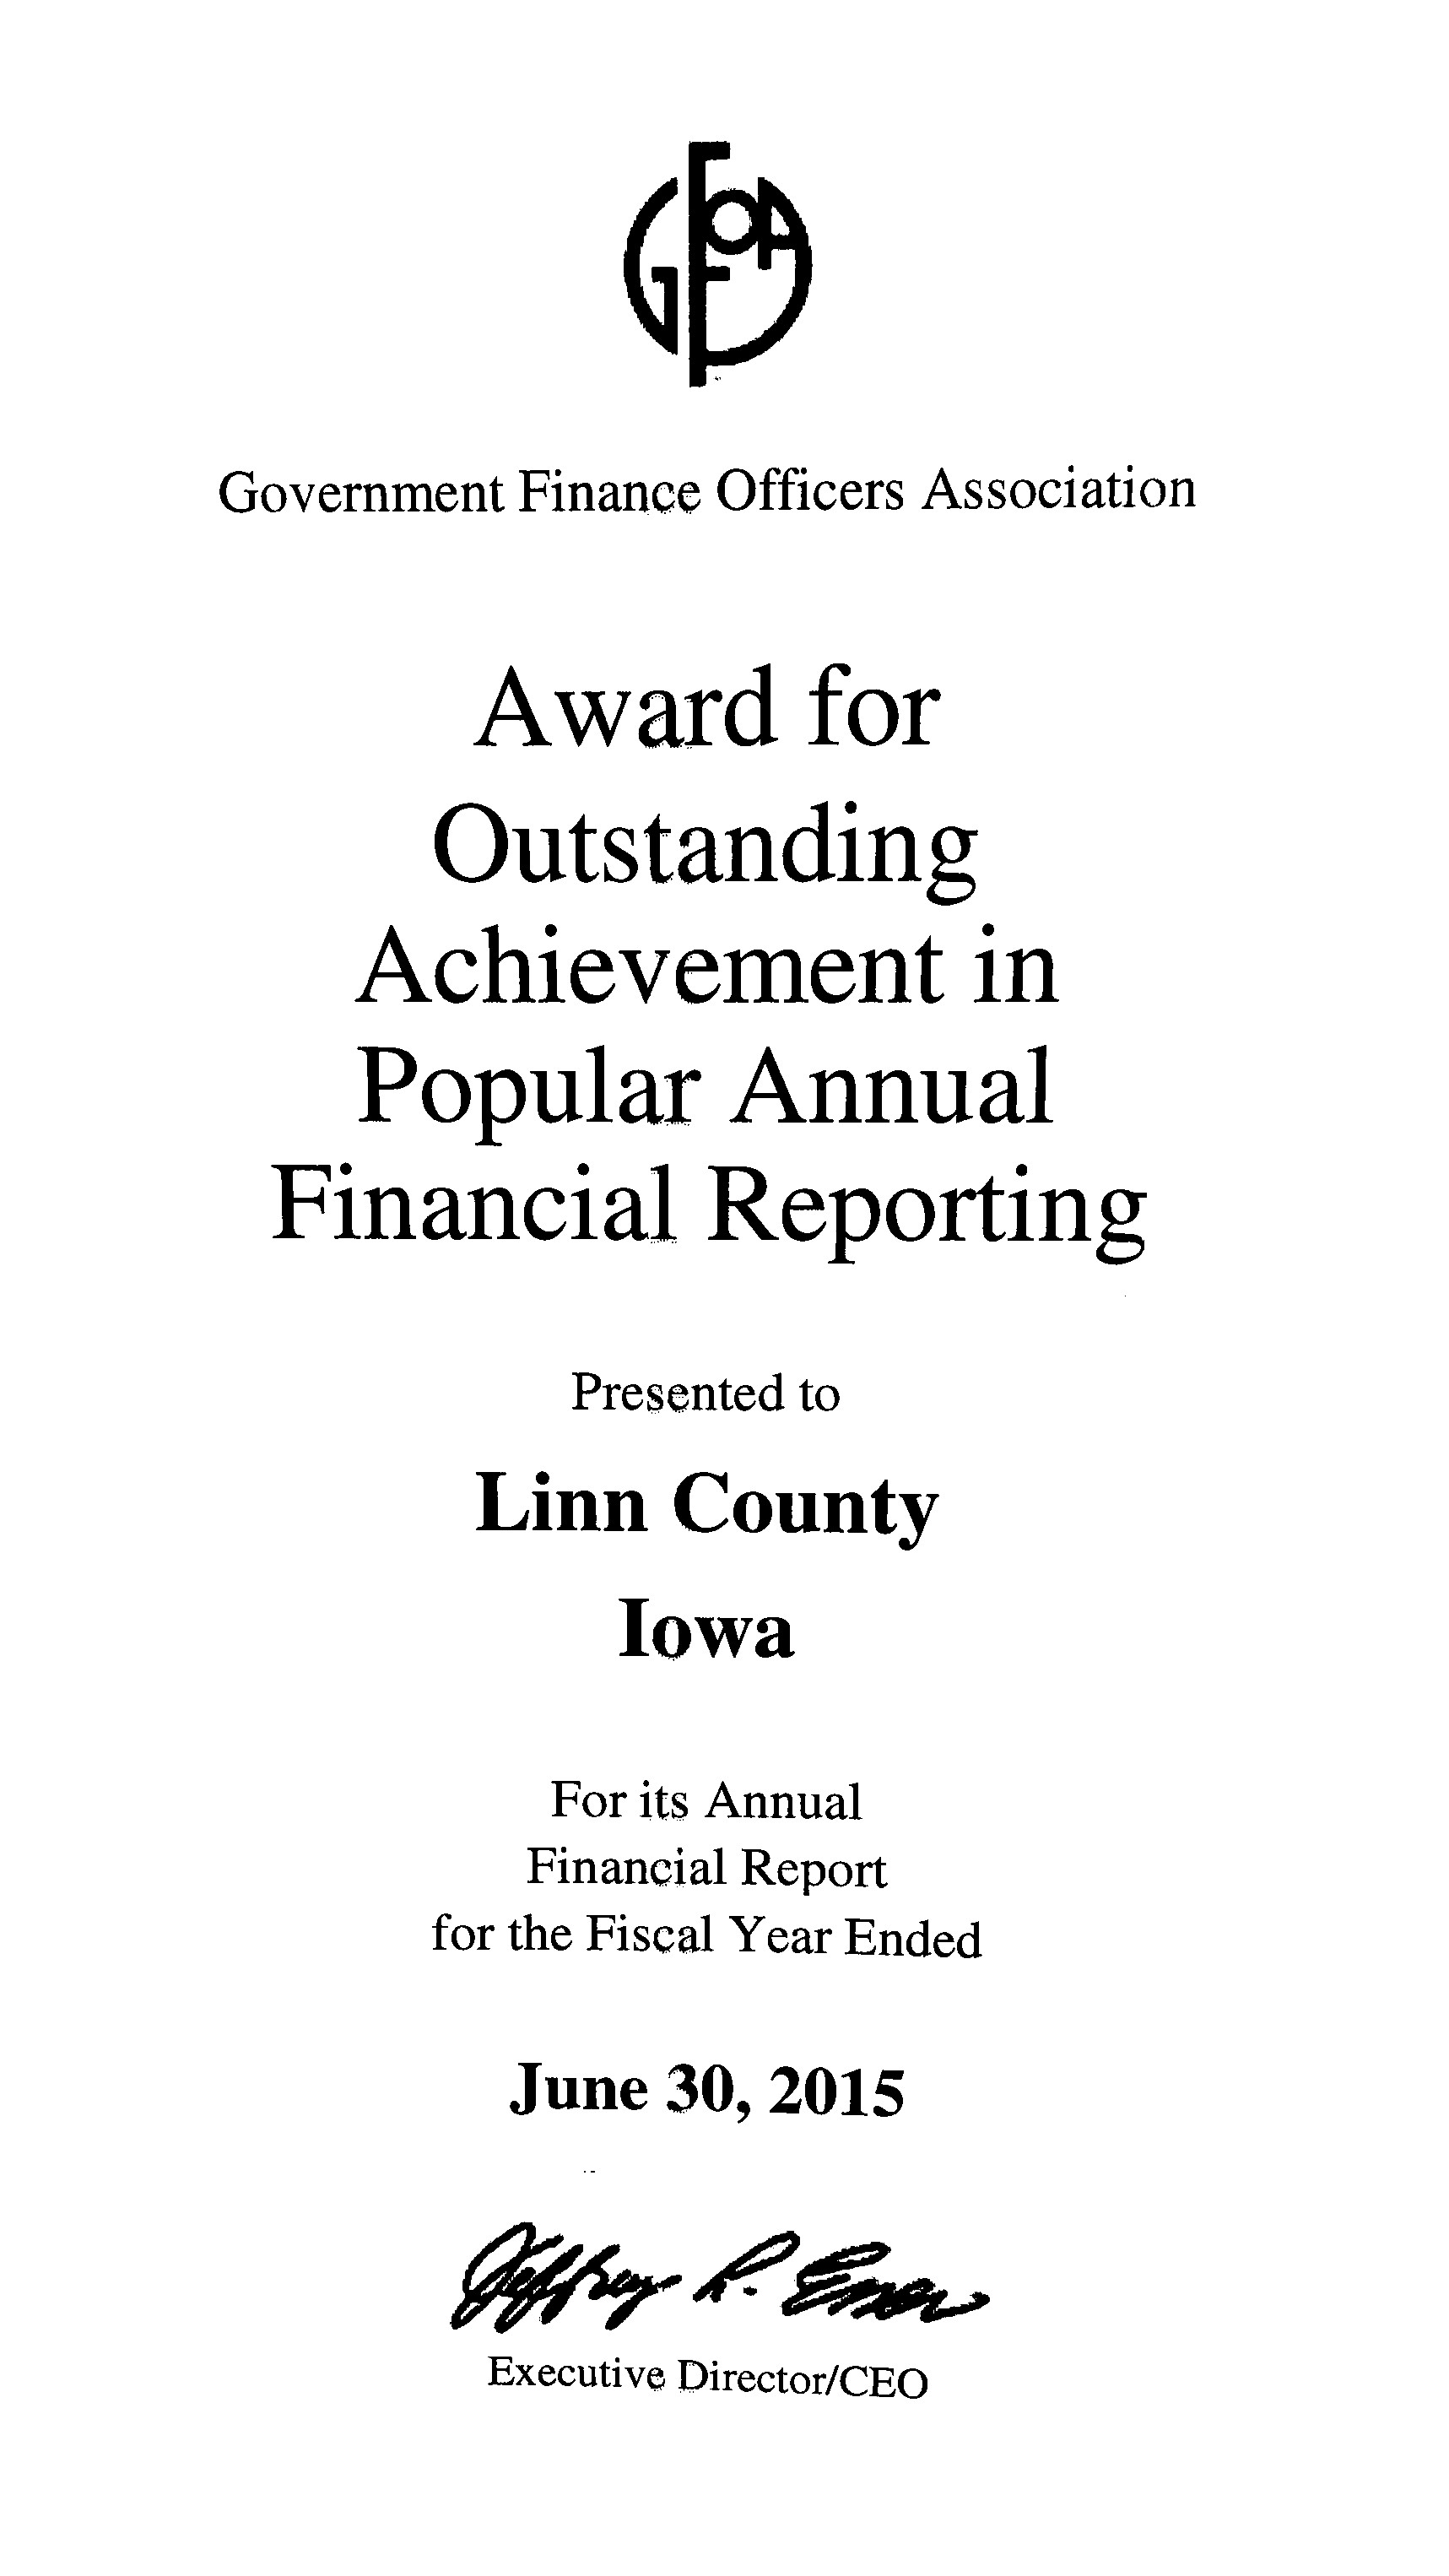 Award Certificate for Outstanding Achievement in Popular Annual Financial Reporting